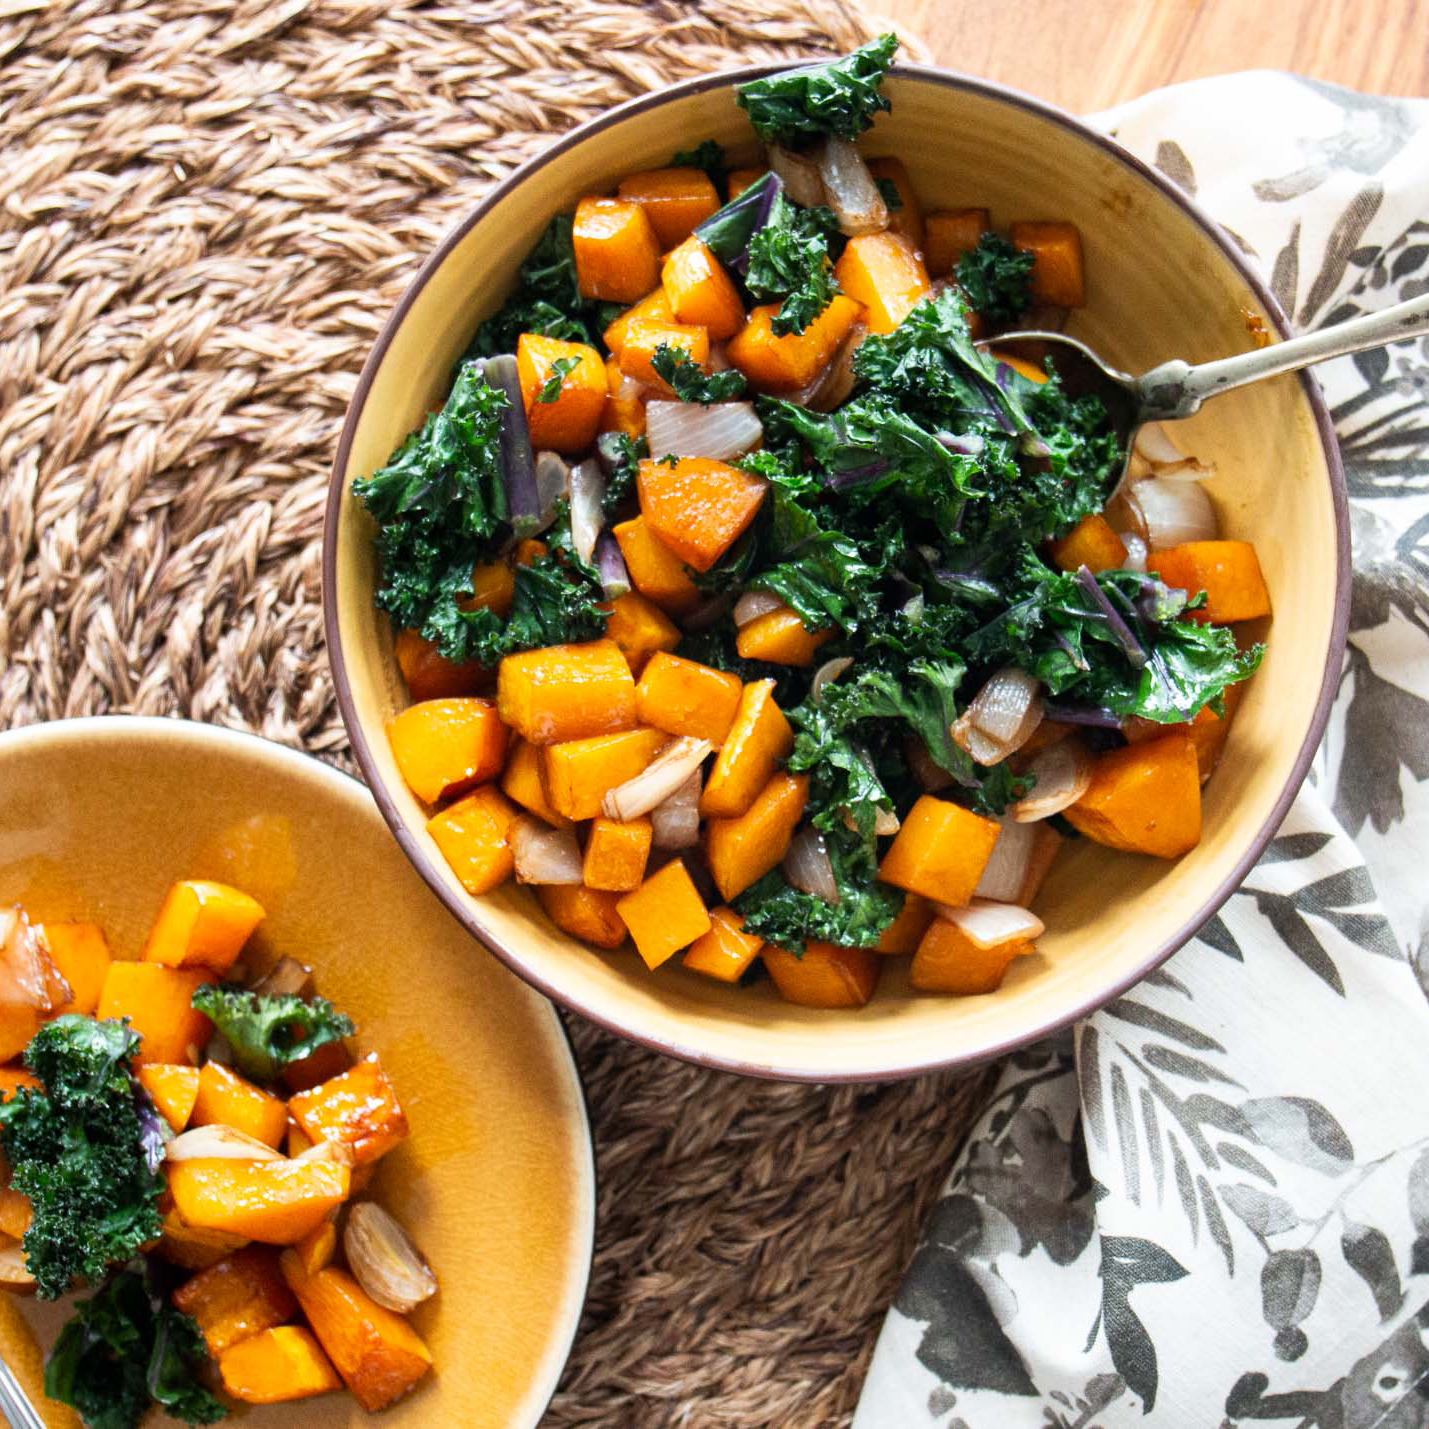 Balsamic Butternut Squash with Kale in two yellow bowls